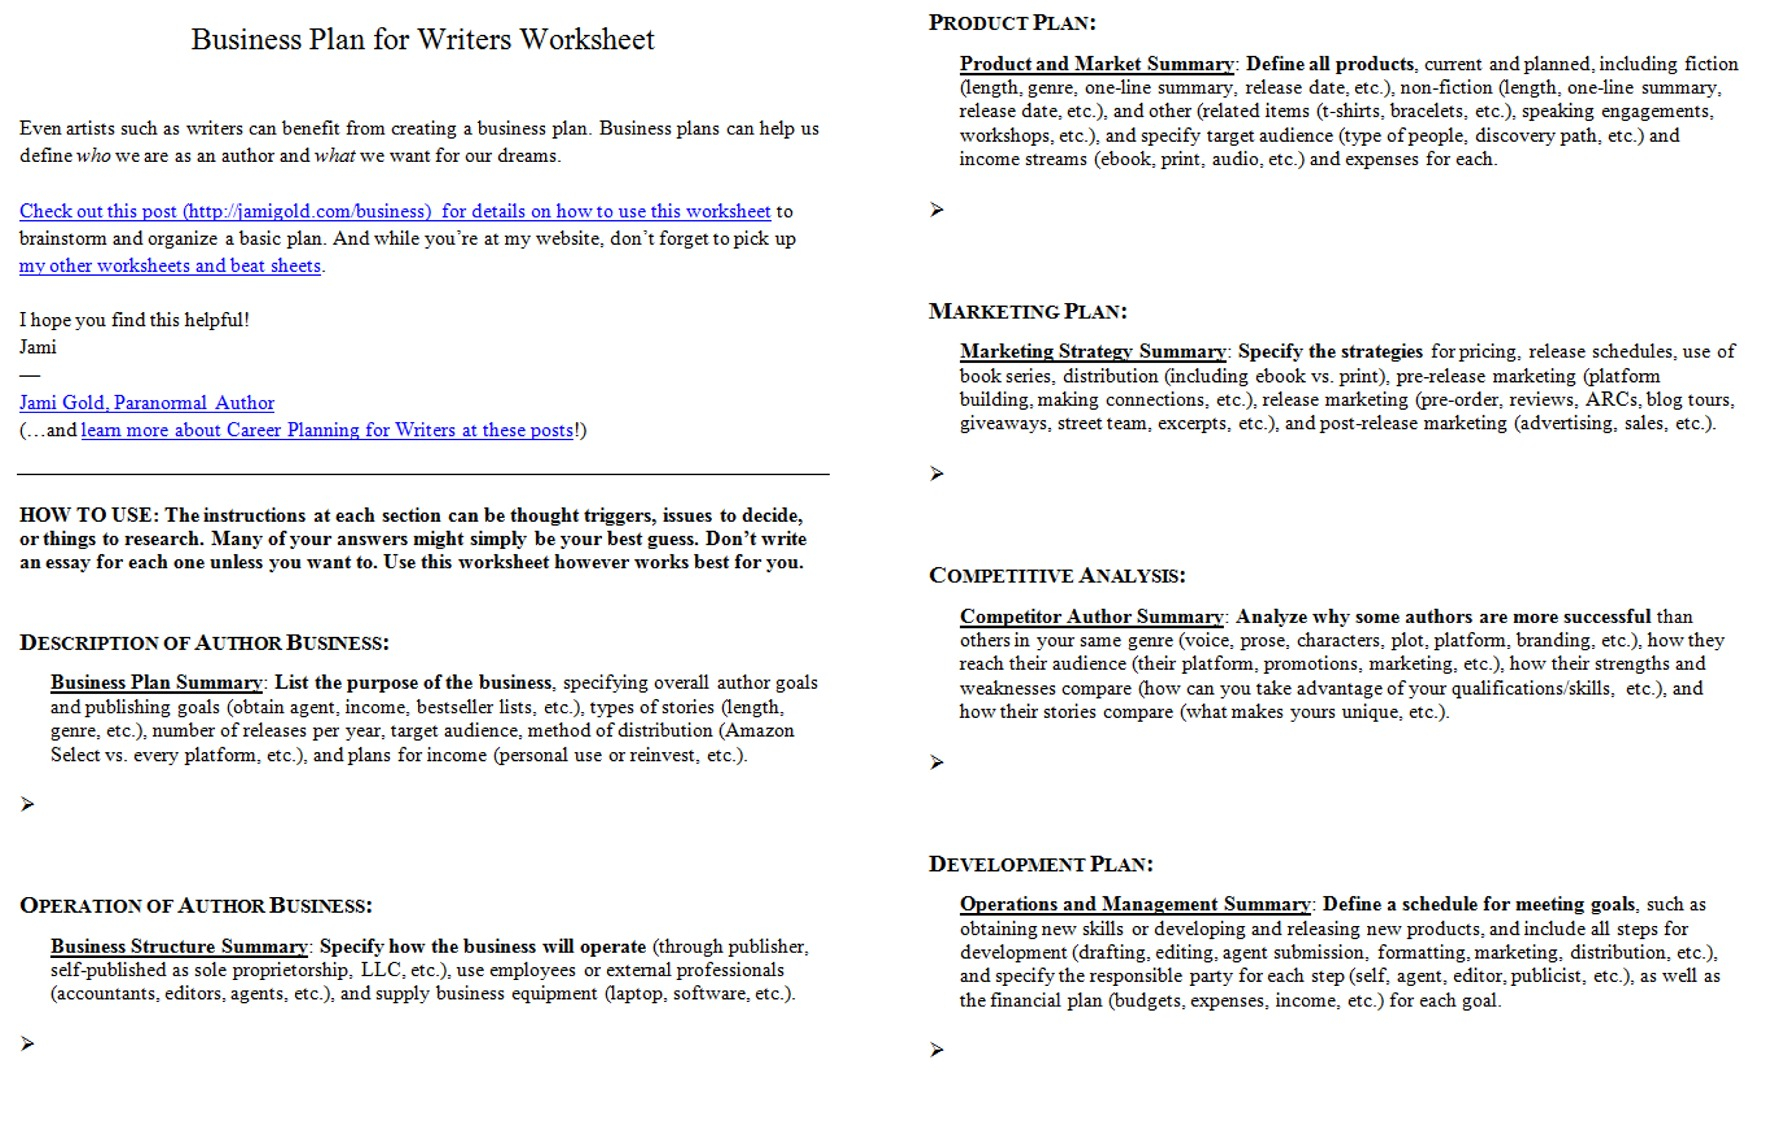 Aldiablosus  Marvellous Worksheets For Writers  Jami Gold Paranormal Author With Marvelous Screen Shot Of Both Pages Of The Business Plan For Writers Worksheet With Cool Number Line Worksheet Also Relative Pronouns Worksheet In Addition Super Teacher Worksheets Th Grade And Hess Law Worksheet As Well As Standing Waves Worksheet Answers Additionally Key Signature Worksheet From Jamigoldcom With Aldiablosus  Marvelous Worksheets For Writers  Jami Gold Paranormal Author With Cool Screen Shot Of Both Pages Of The Business Plan For Writers Worksheet And Marvellous Number Line Worksheet Also Relative Pronouns Worksheet In Addition Super Teacher Worksheets Th Grade From Jamigoldcom